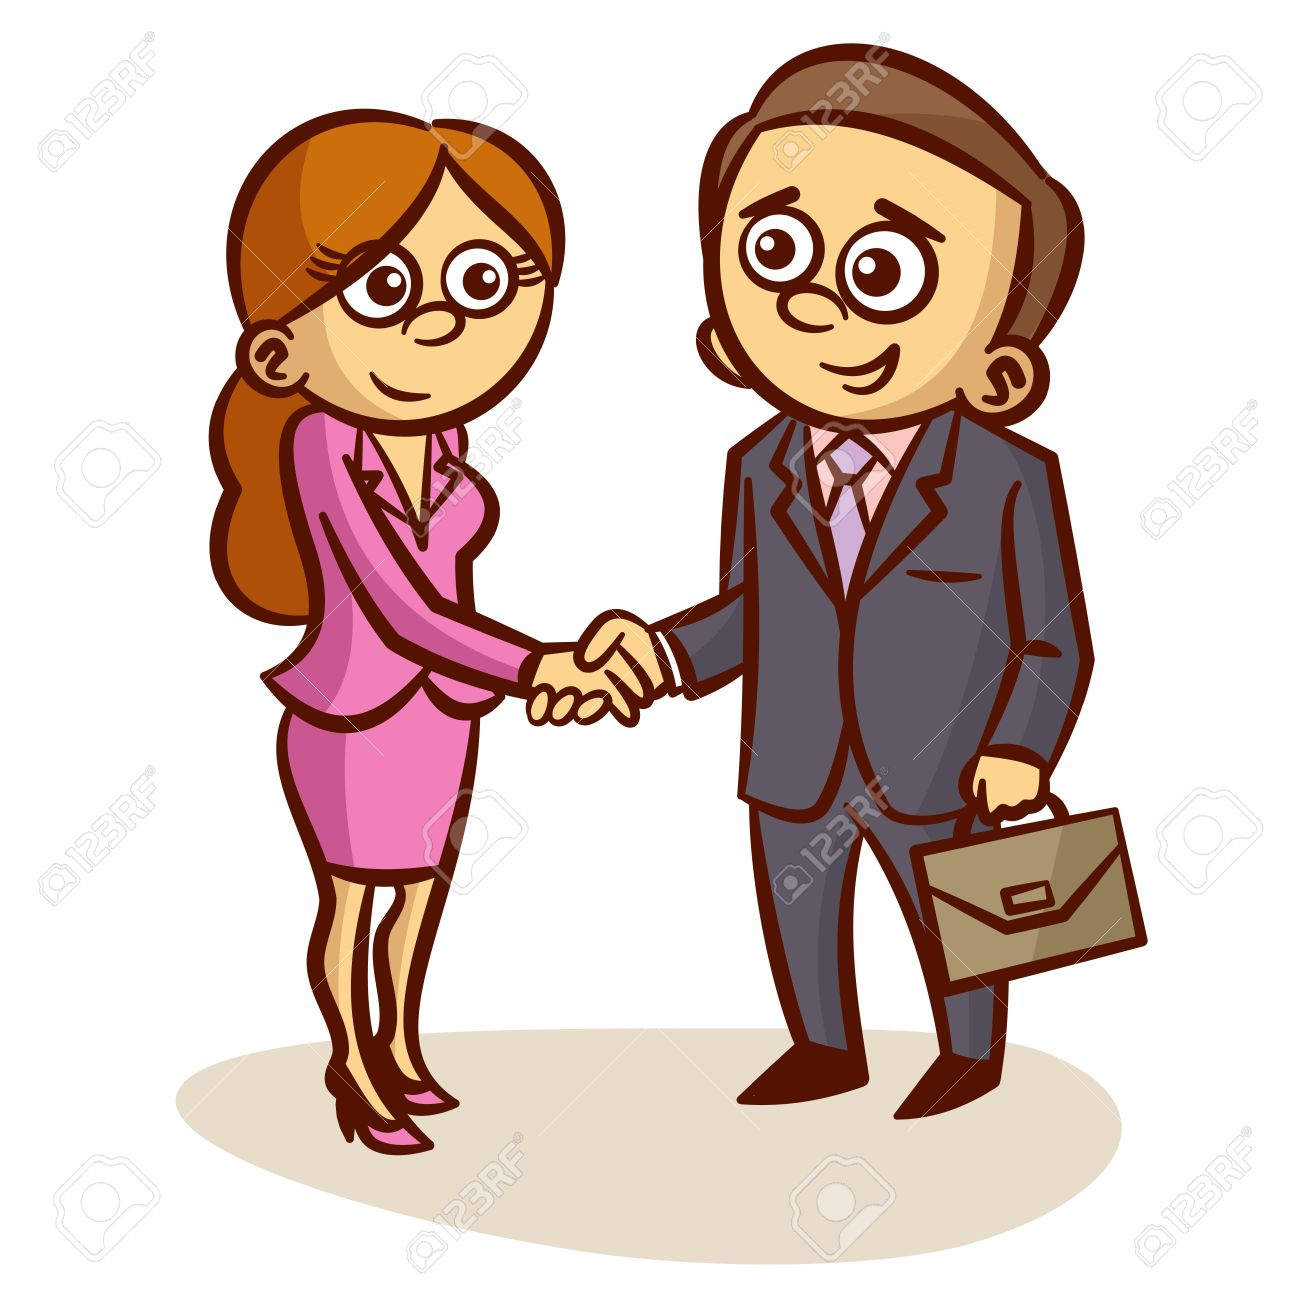 Business Partners Shaking Hands Partnership Clipart Stock Vector - 61250322